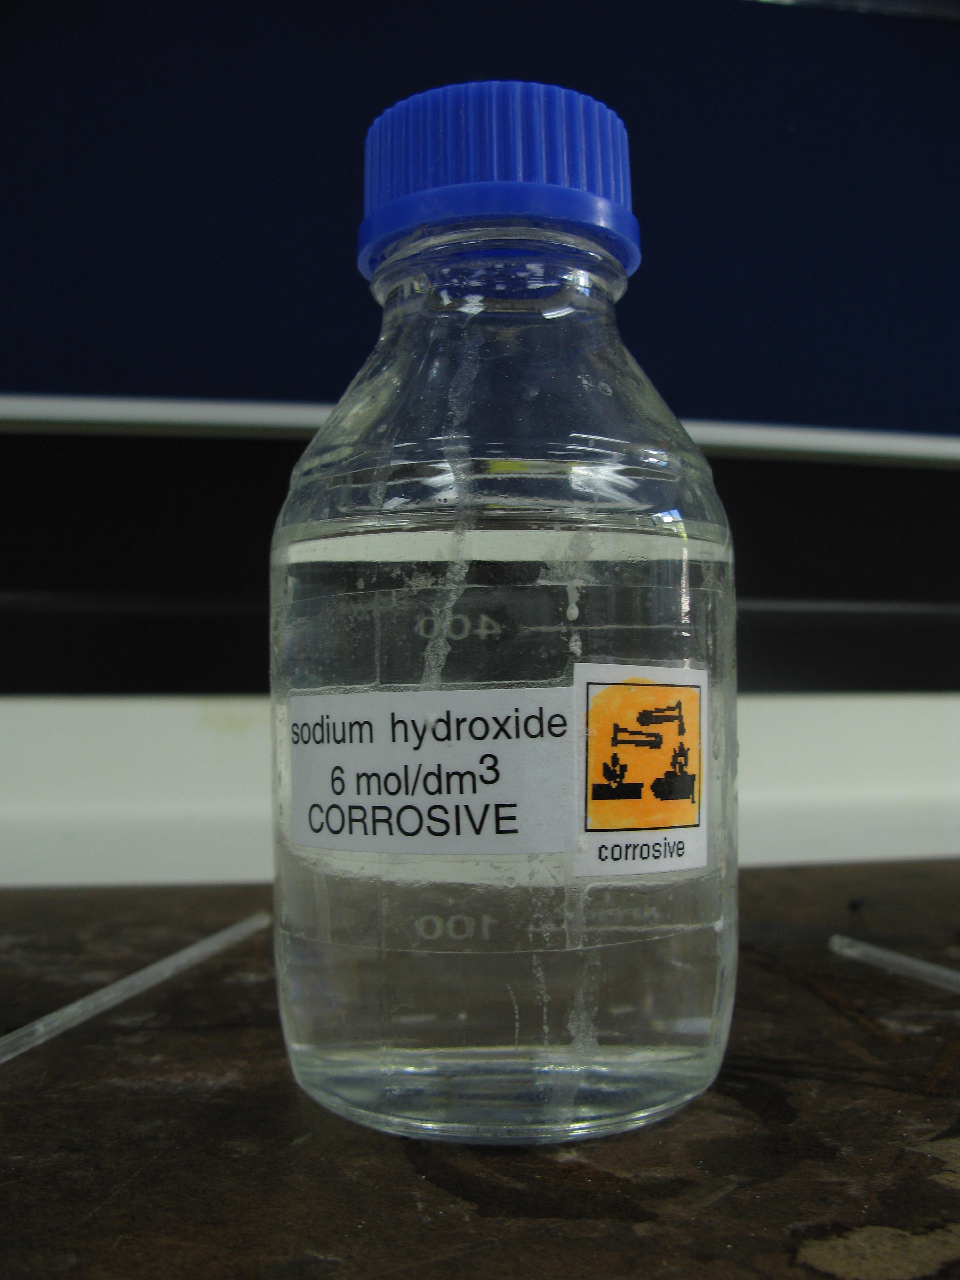 By Matthew Sergei Perrin from Auckland, New Zealand (Sodium Hydroxide 6mol Corrosive Lab Chemicals) [CC BY 2.0 (http://creativecommons.org/licenses/by/2.0)], via Wikimedia Commons